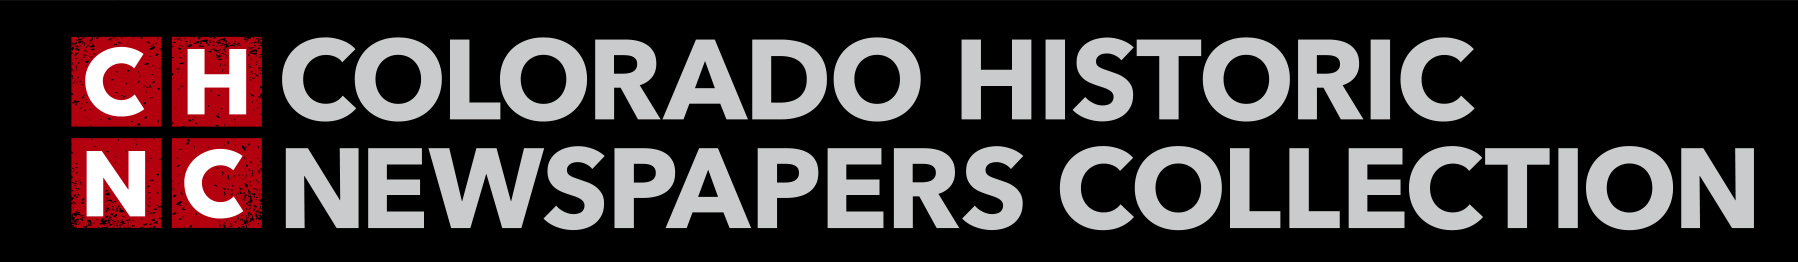 Colorado Historic Newspapers Collection Logo